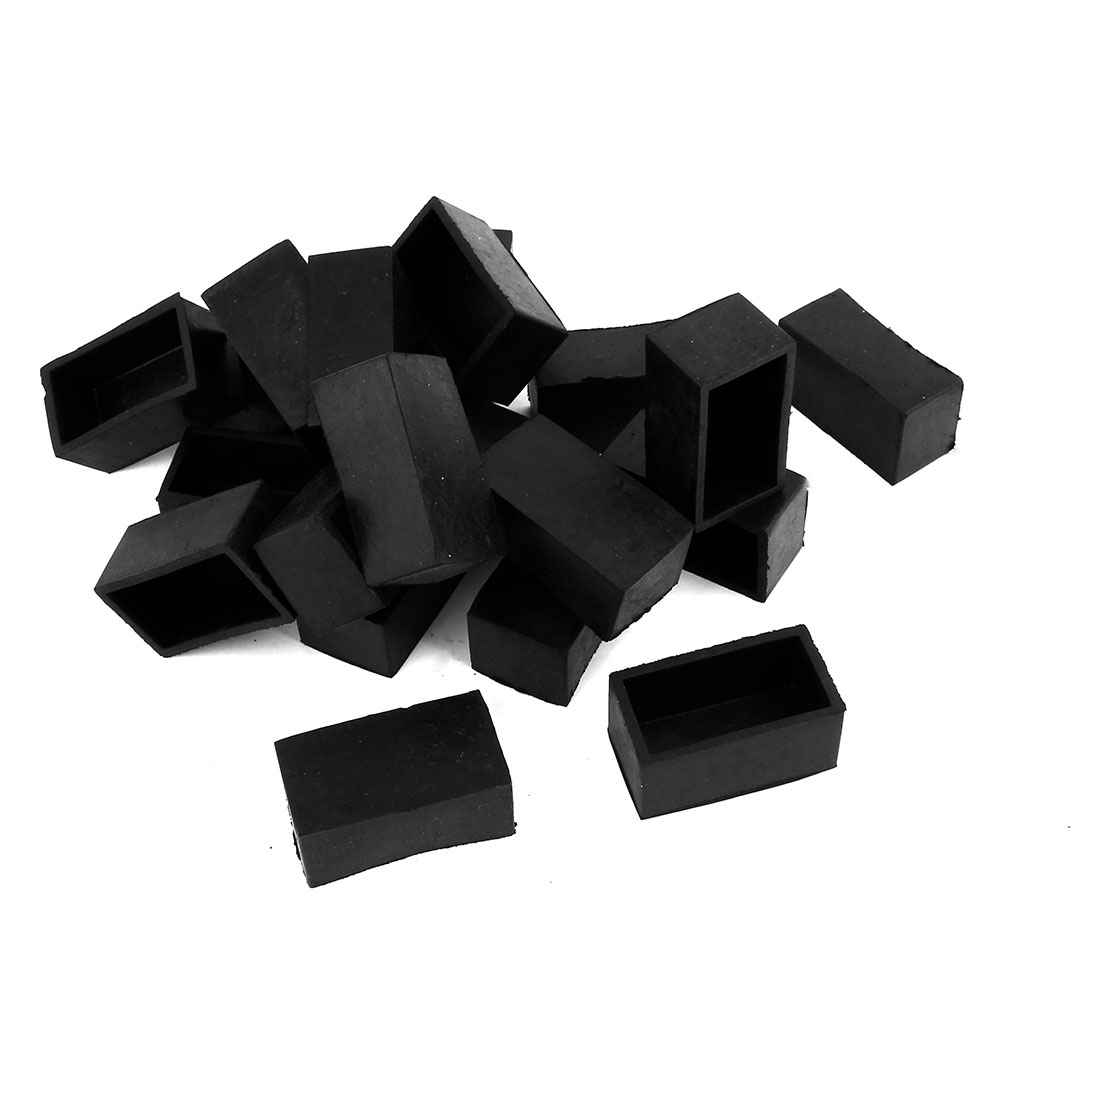 10 Pcs Black Rubber 25mmx50mm Rectangular Chair Table Foot Cover Protector Furniture Leg End Caps